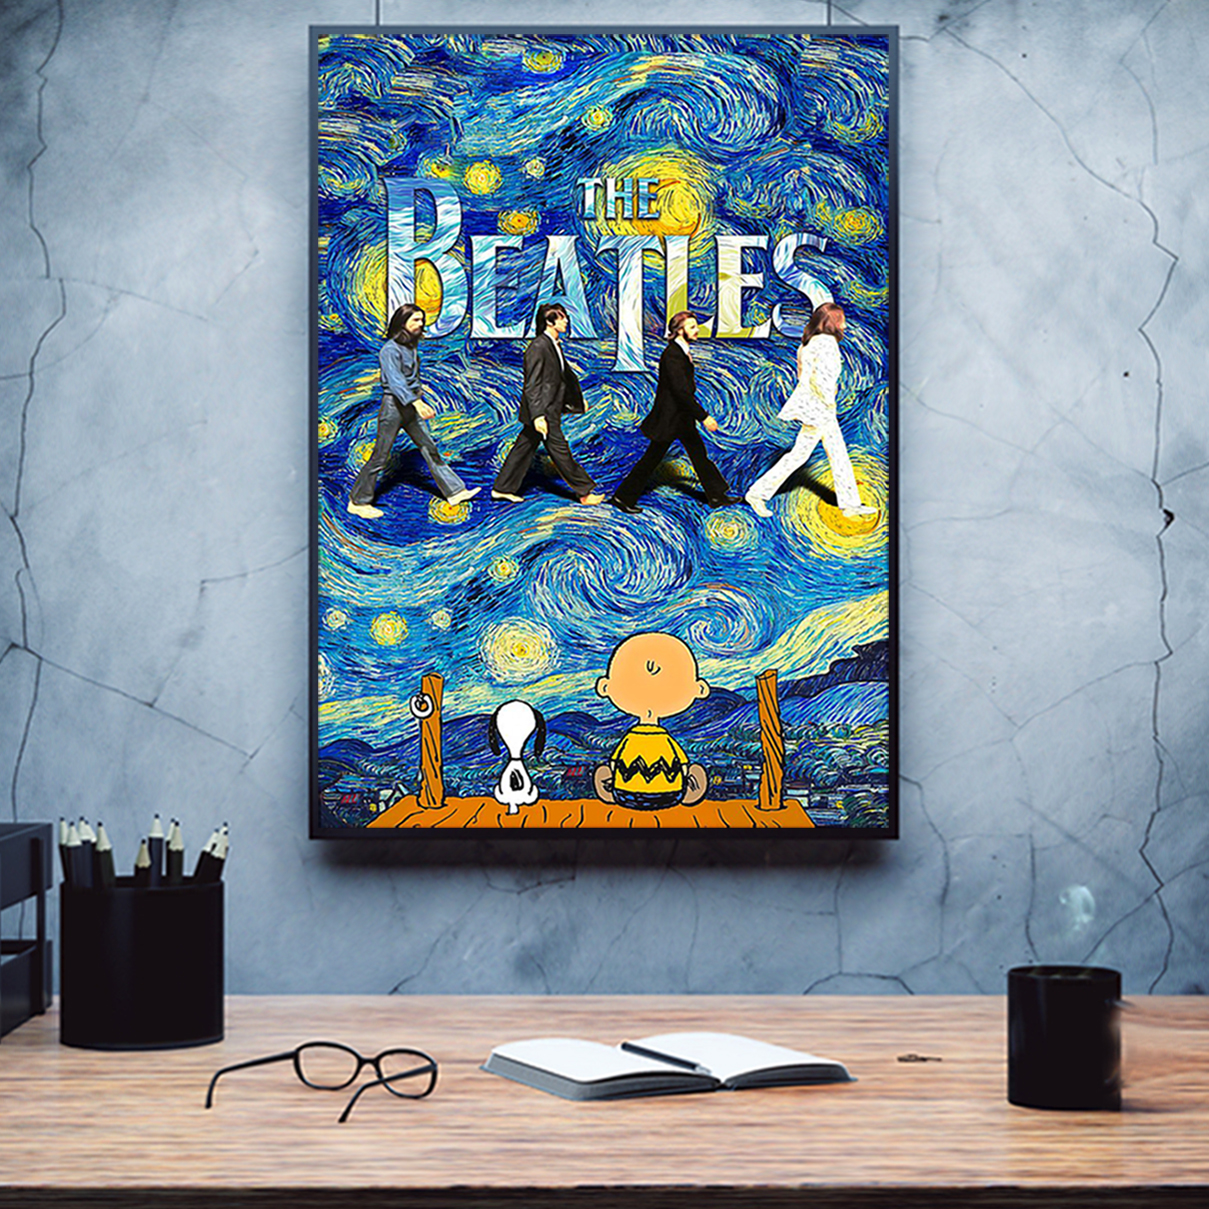 Snoopy charlie brown the beatles starry night van gogh poster A3